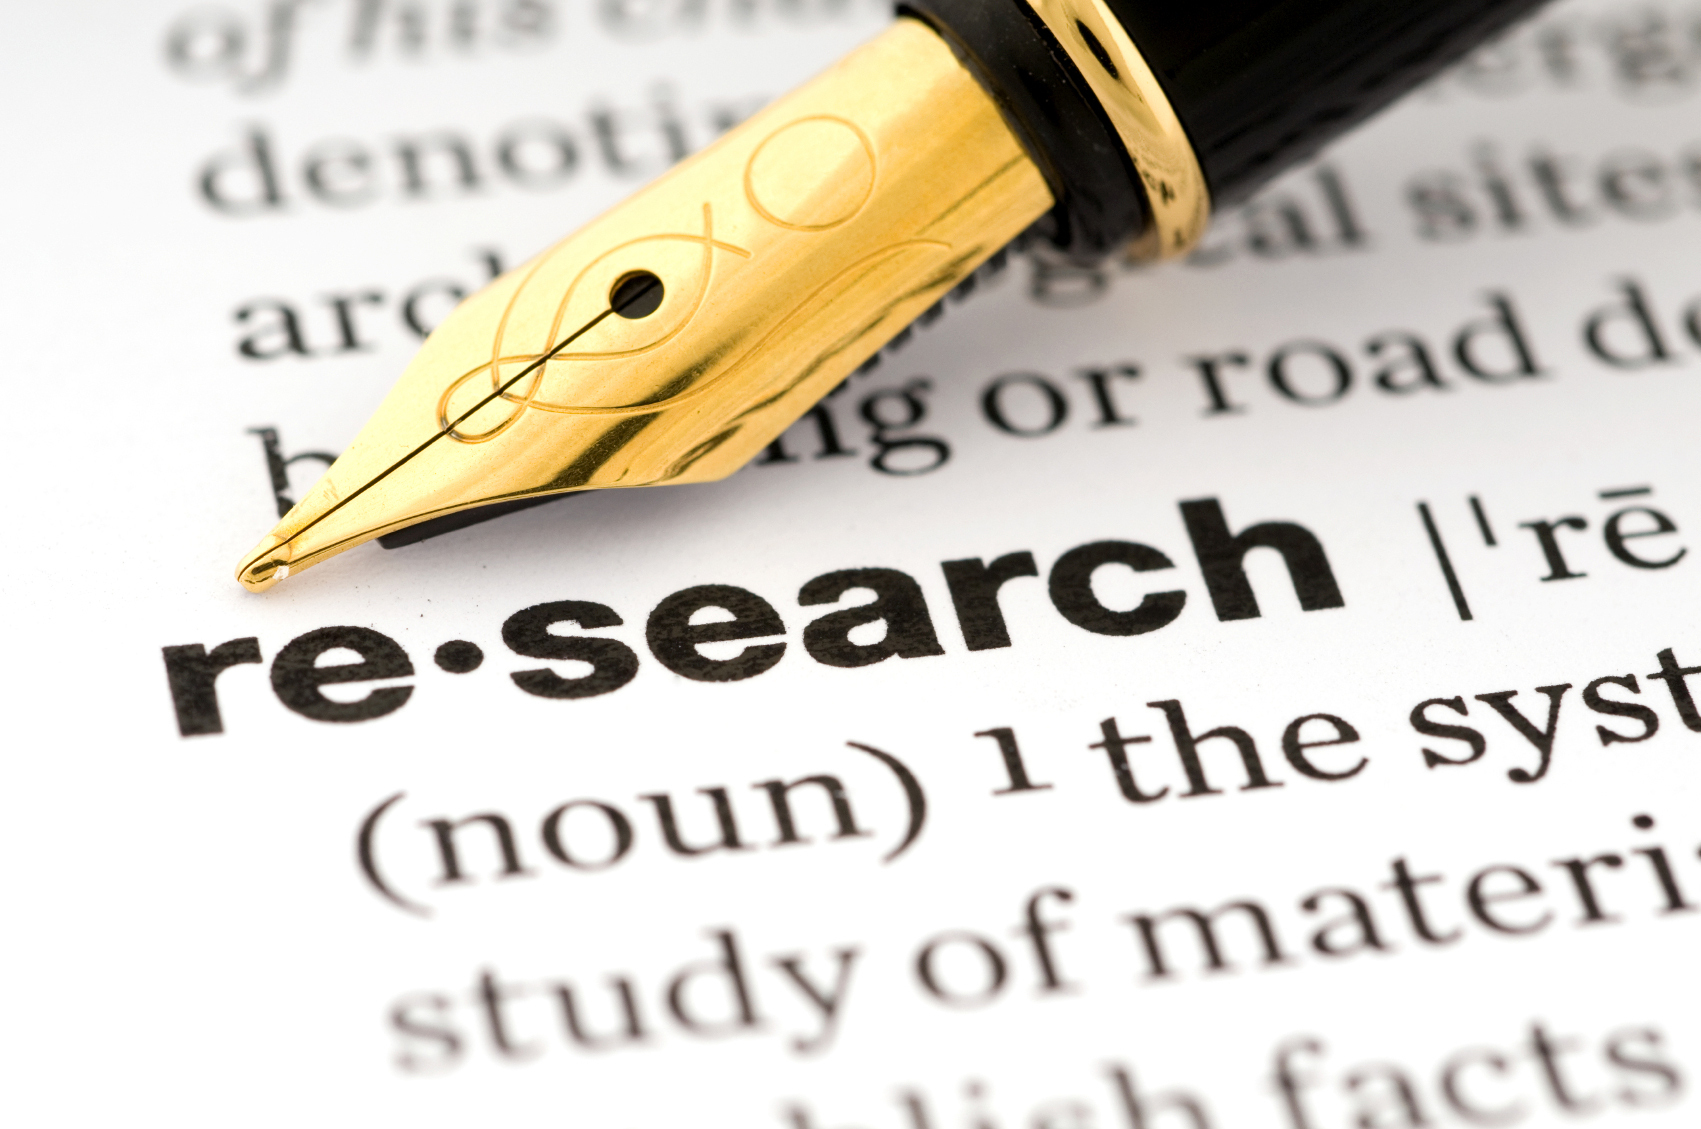 research papers document image analysis The ultimate guide to writing perfect research papers,  and the analysis and interpretation of the research  document all ideas borrowed or quotes used.